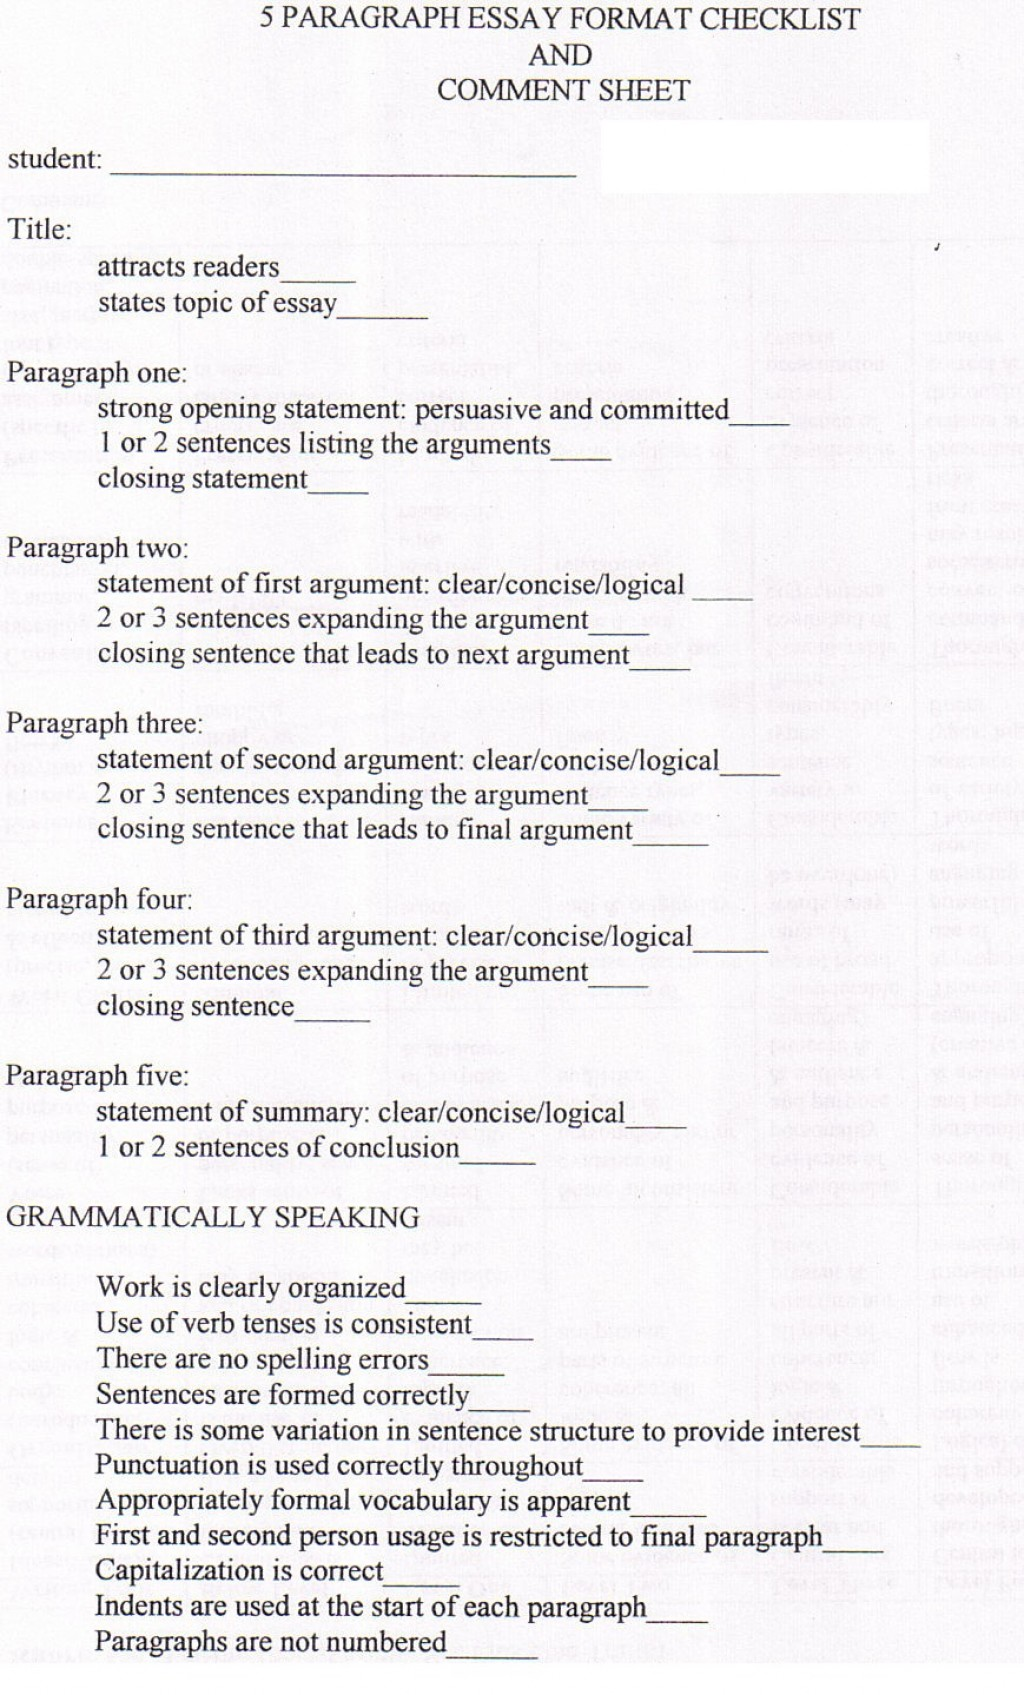 019 Essay Example Persuasive About Bullying Stunning Topics On In Schools Introduction Tagalog Large